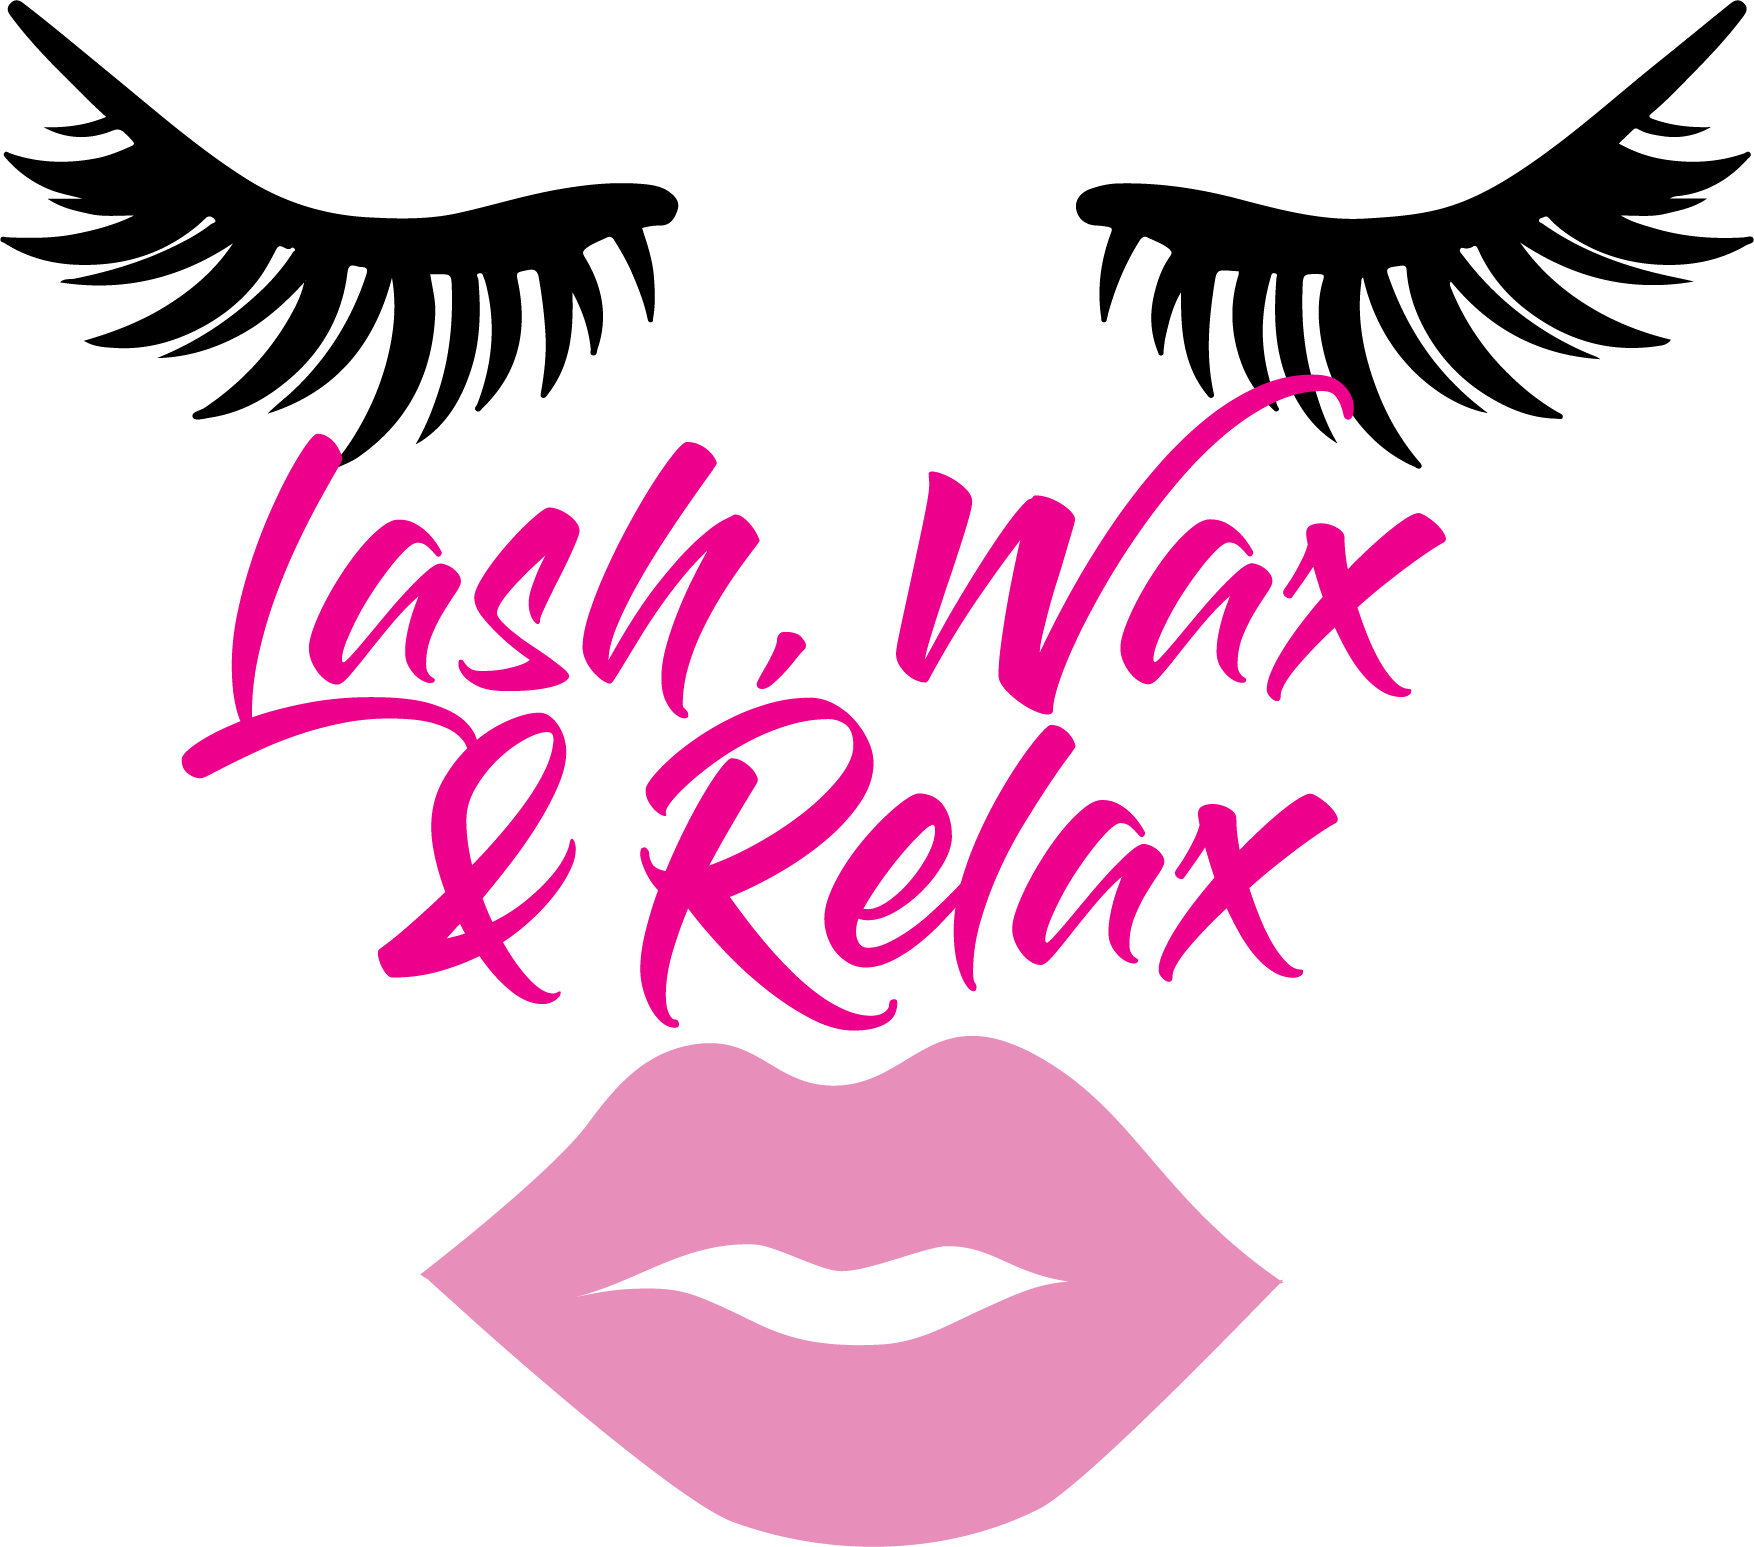 Welcome to Lash, Wax and Relax!